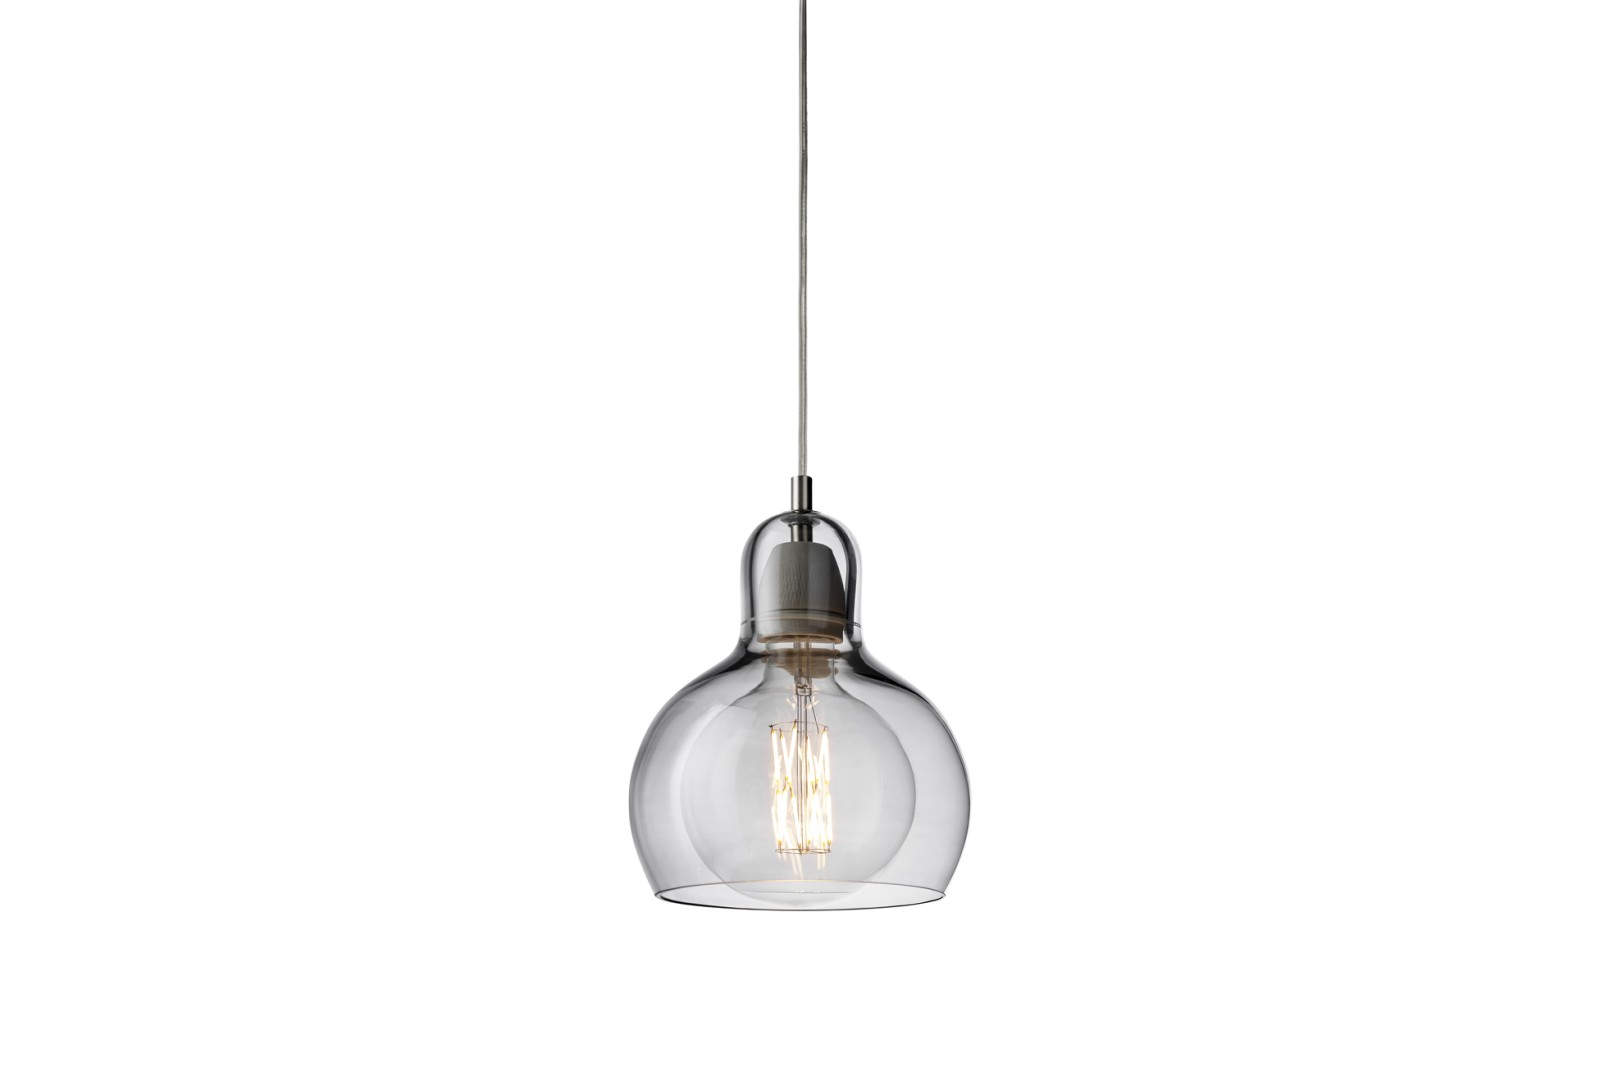 Mega Bulb SR2 Pendant Light - set of 2 Silver glass with clear cord